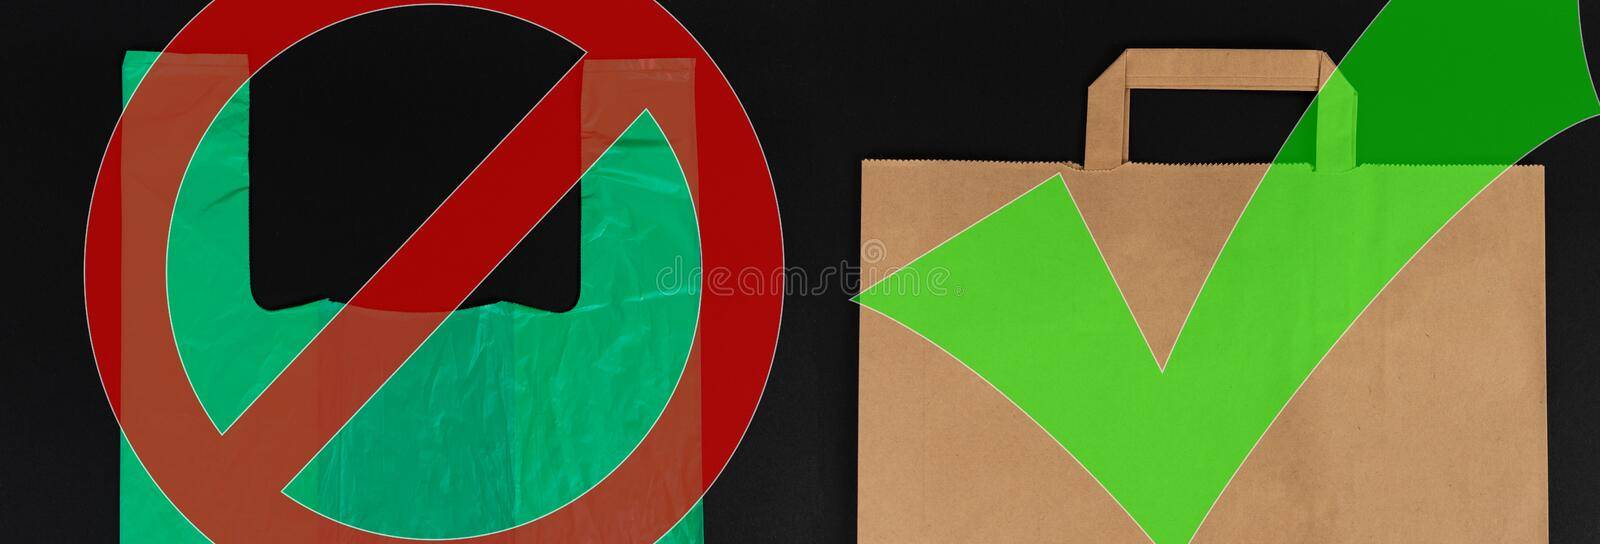 Biodegradable versus single use waste choice concept. With green plastic and brown paper bags isolated on black background vector illustration